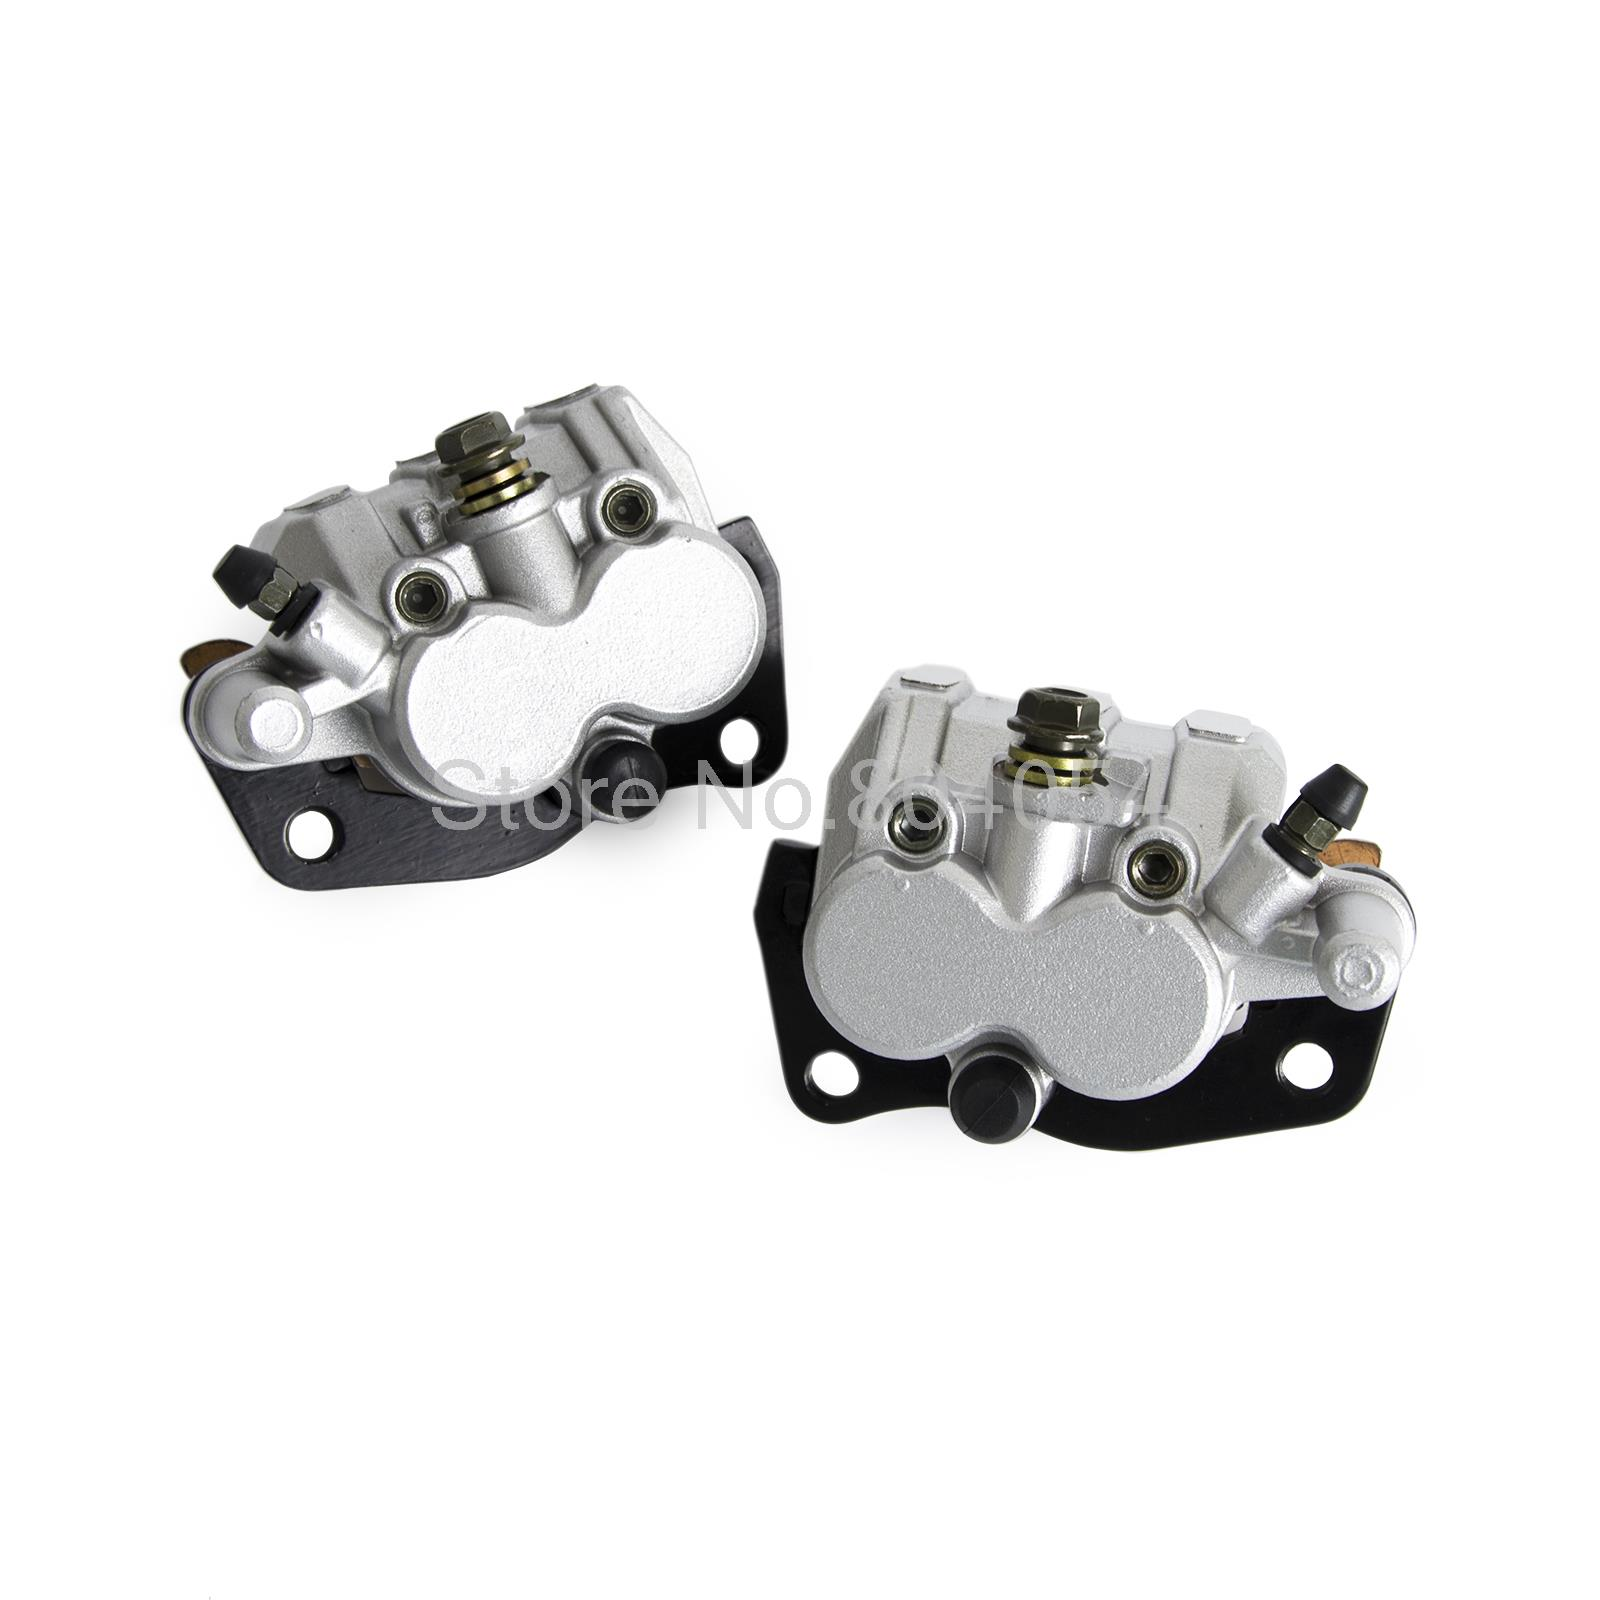 New Front Brake Caliper With Pads Fits For Yamaha UTV RHINO 660 2004 2005 2006 2007 new front brake caliper with pads fits for yamaha utv rhino 450 2006 2009 2008 660 2004 2005 2006 2007 new